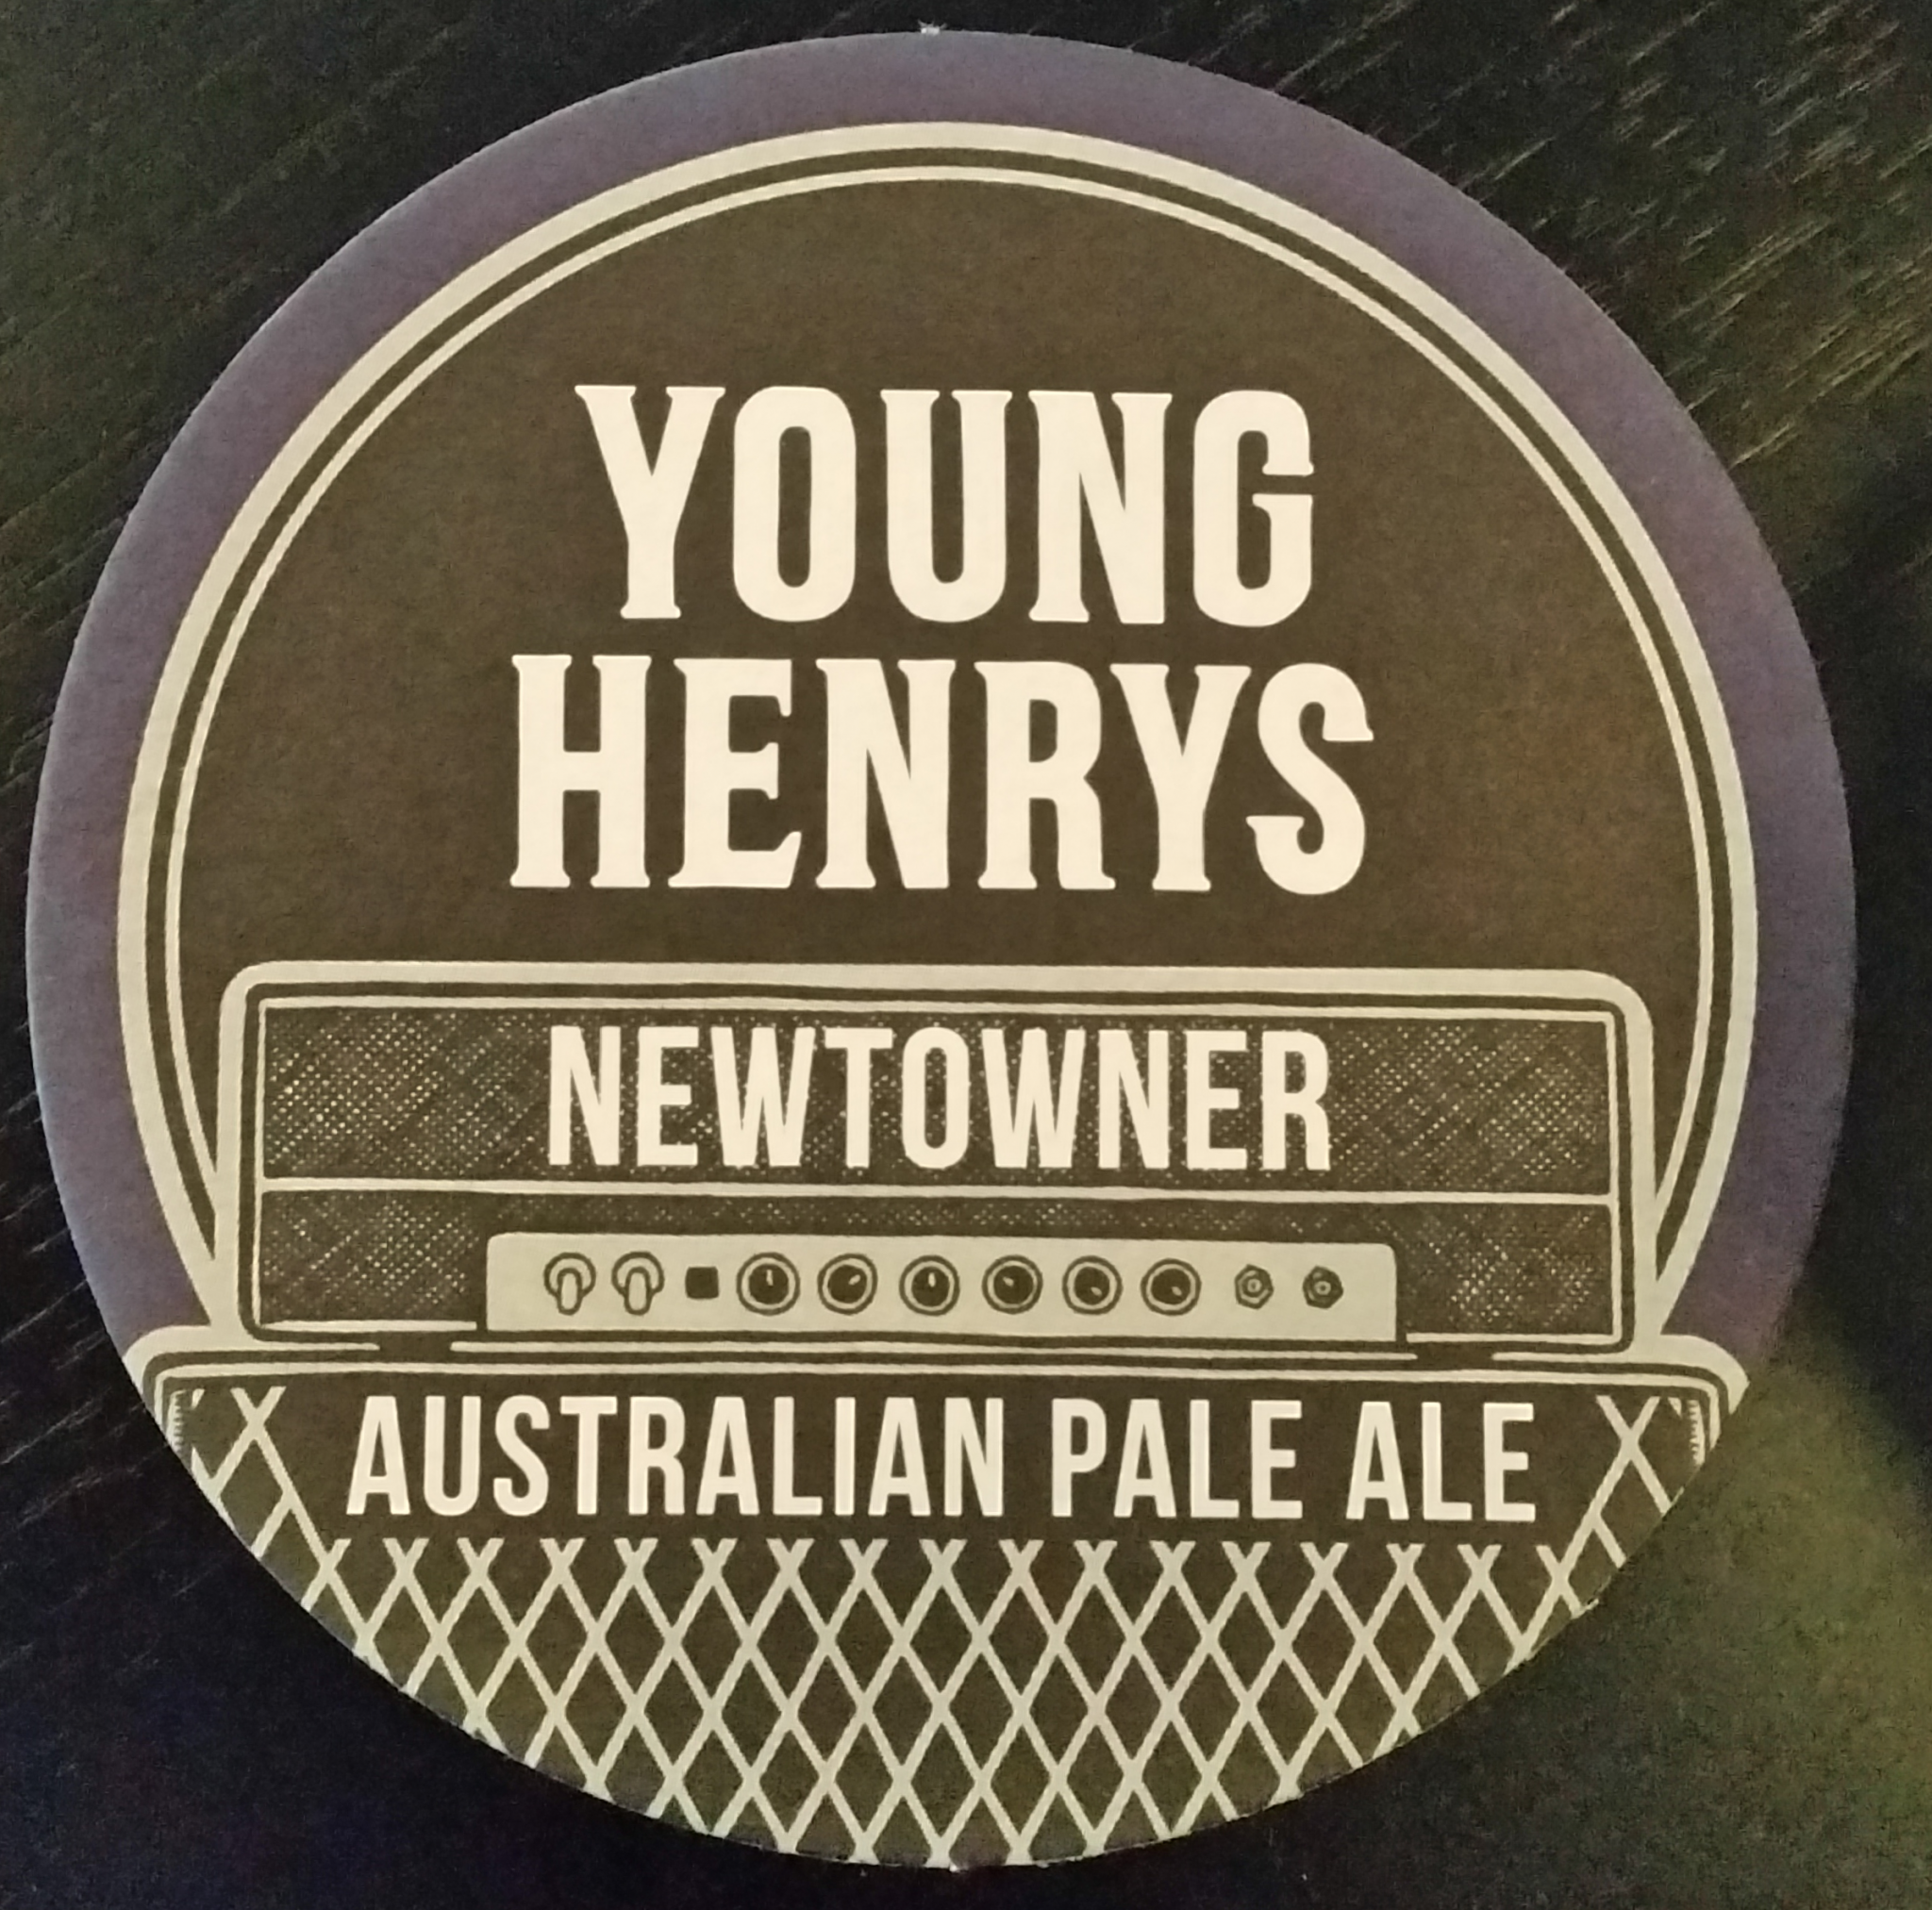 How good is this Sydney beer?